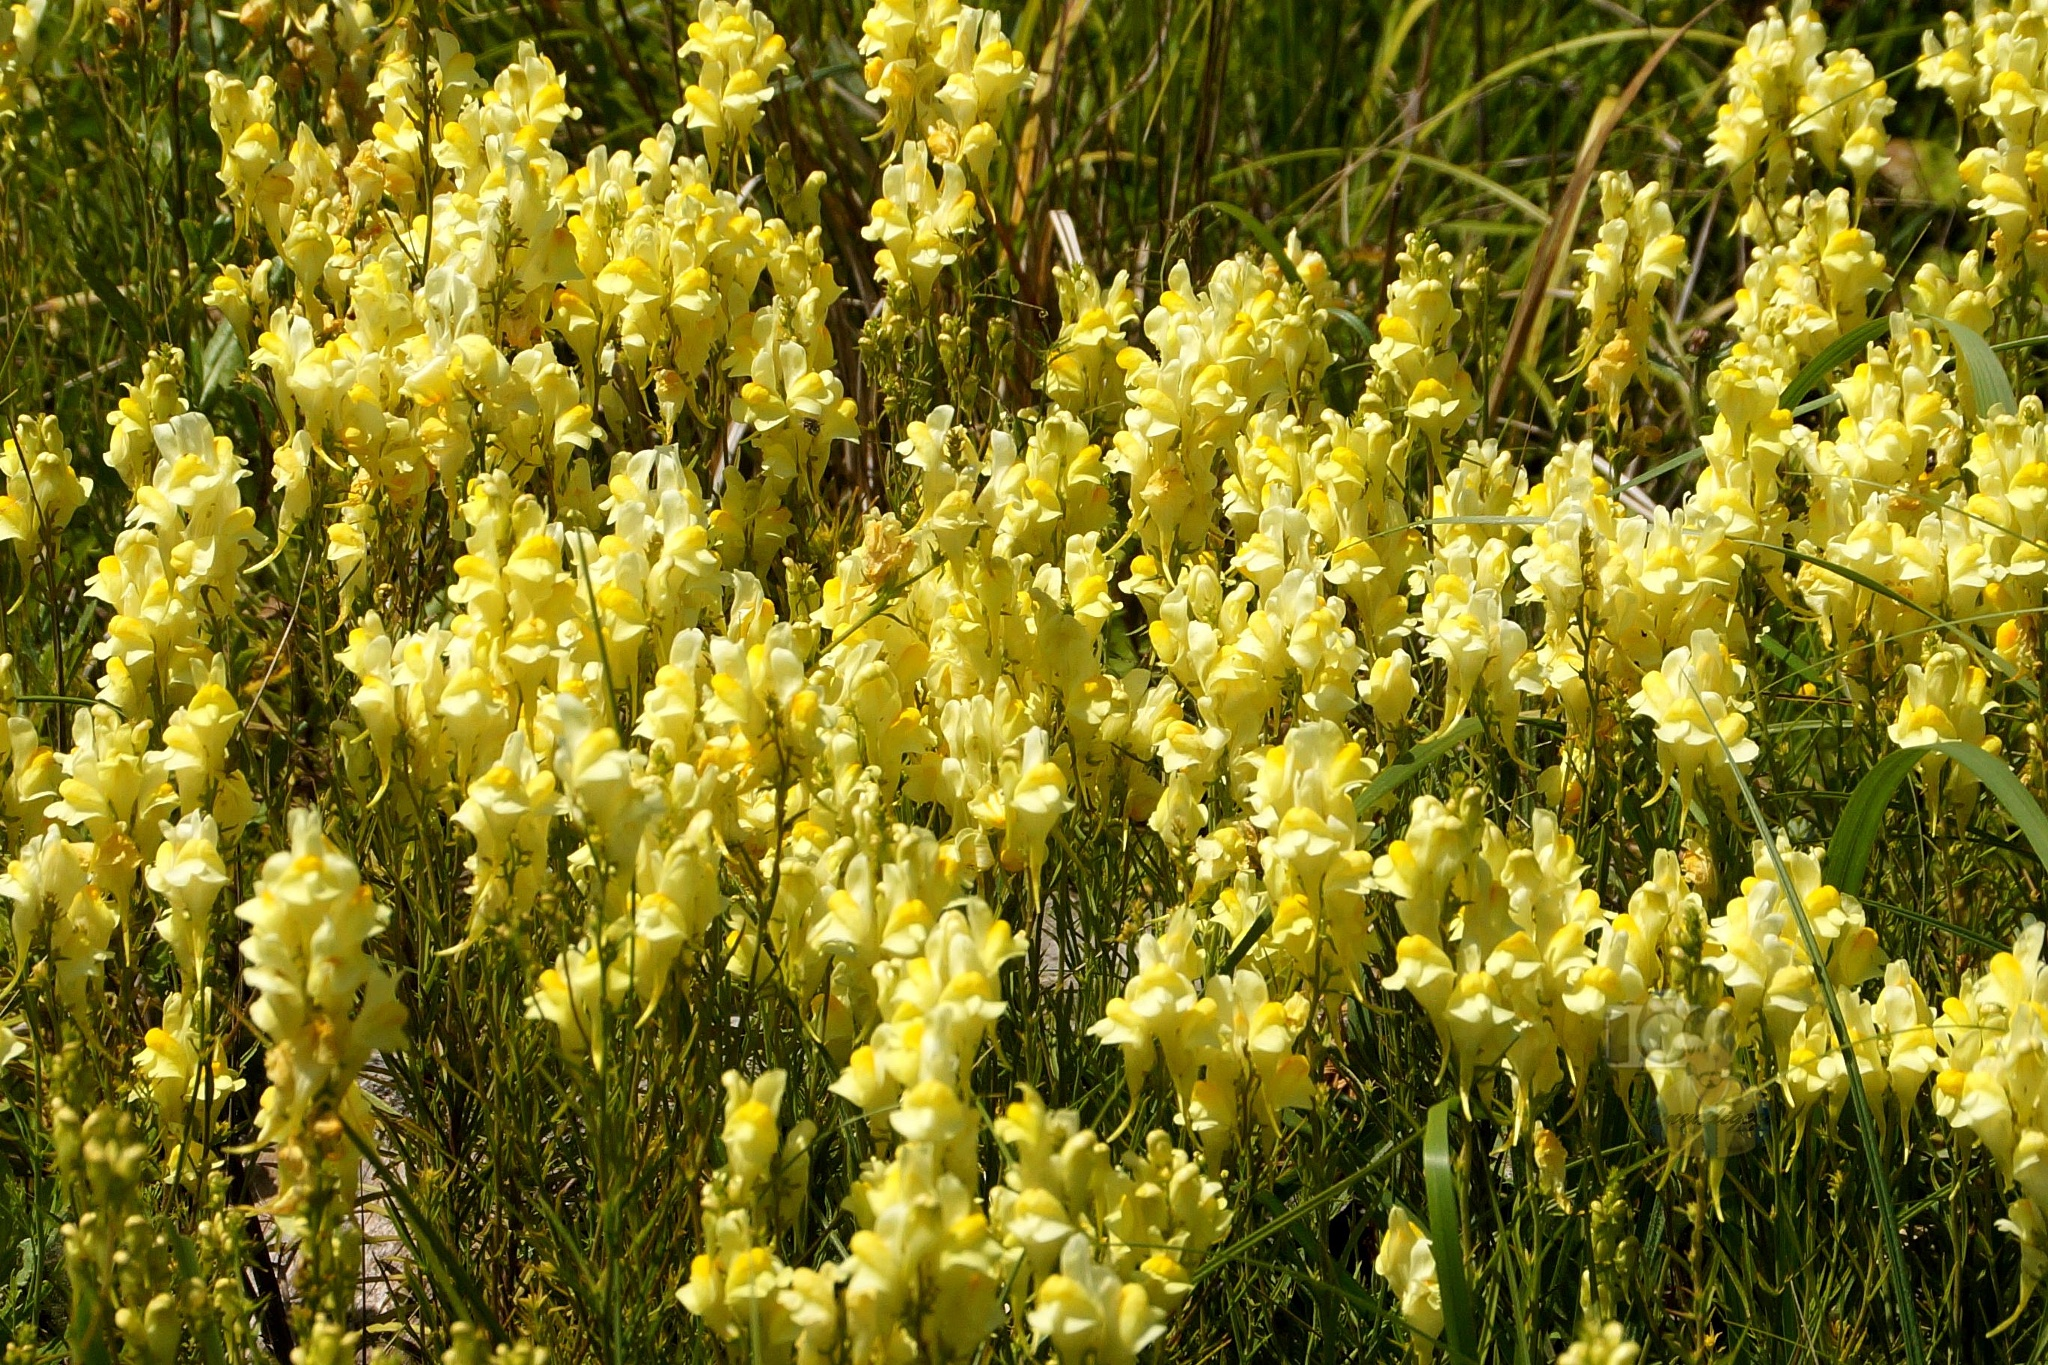 """June 23,16. common toadflax, yellow toadflax, or """"butter-and-eggs"""" carpet by hunyadigeza"""